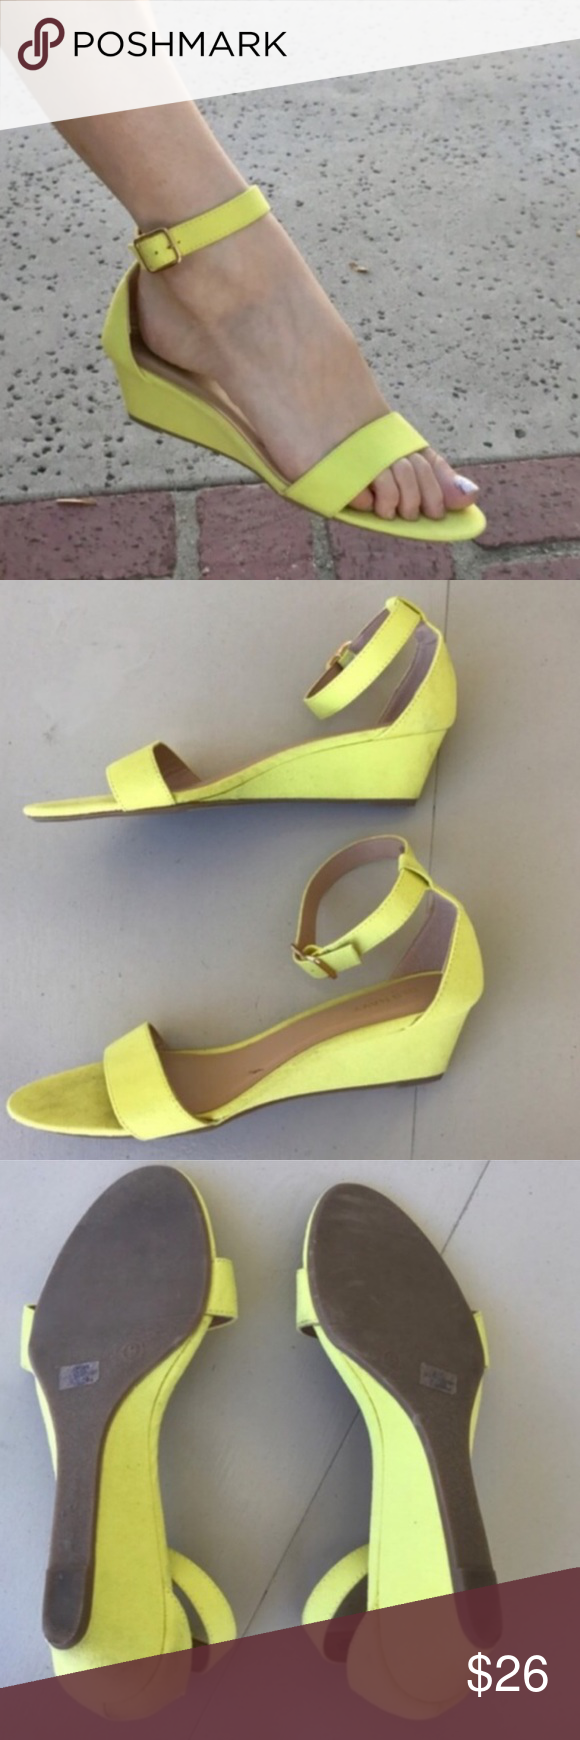 0ac8c3b2334 Yellow low WEDGE SANDAL STRAPPY Sz 9 faux suede So pretty! BEST ...